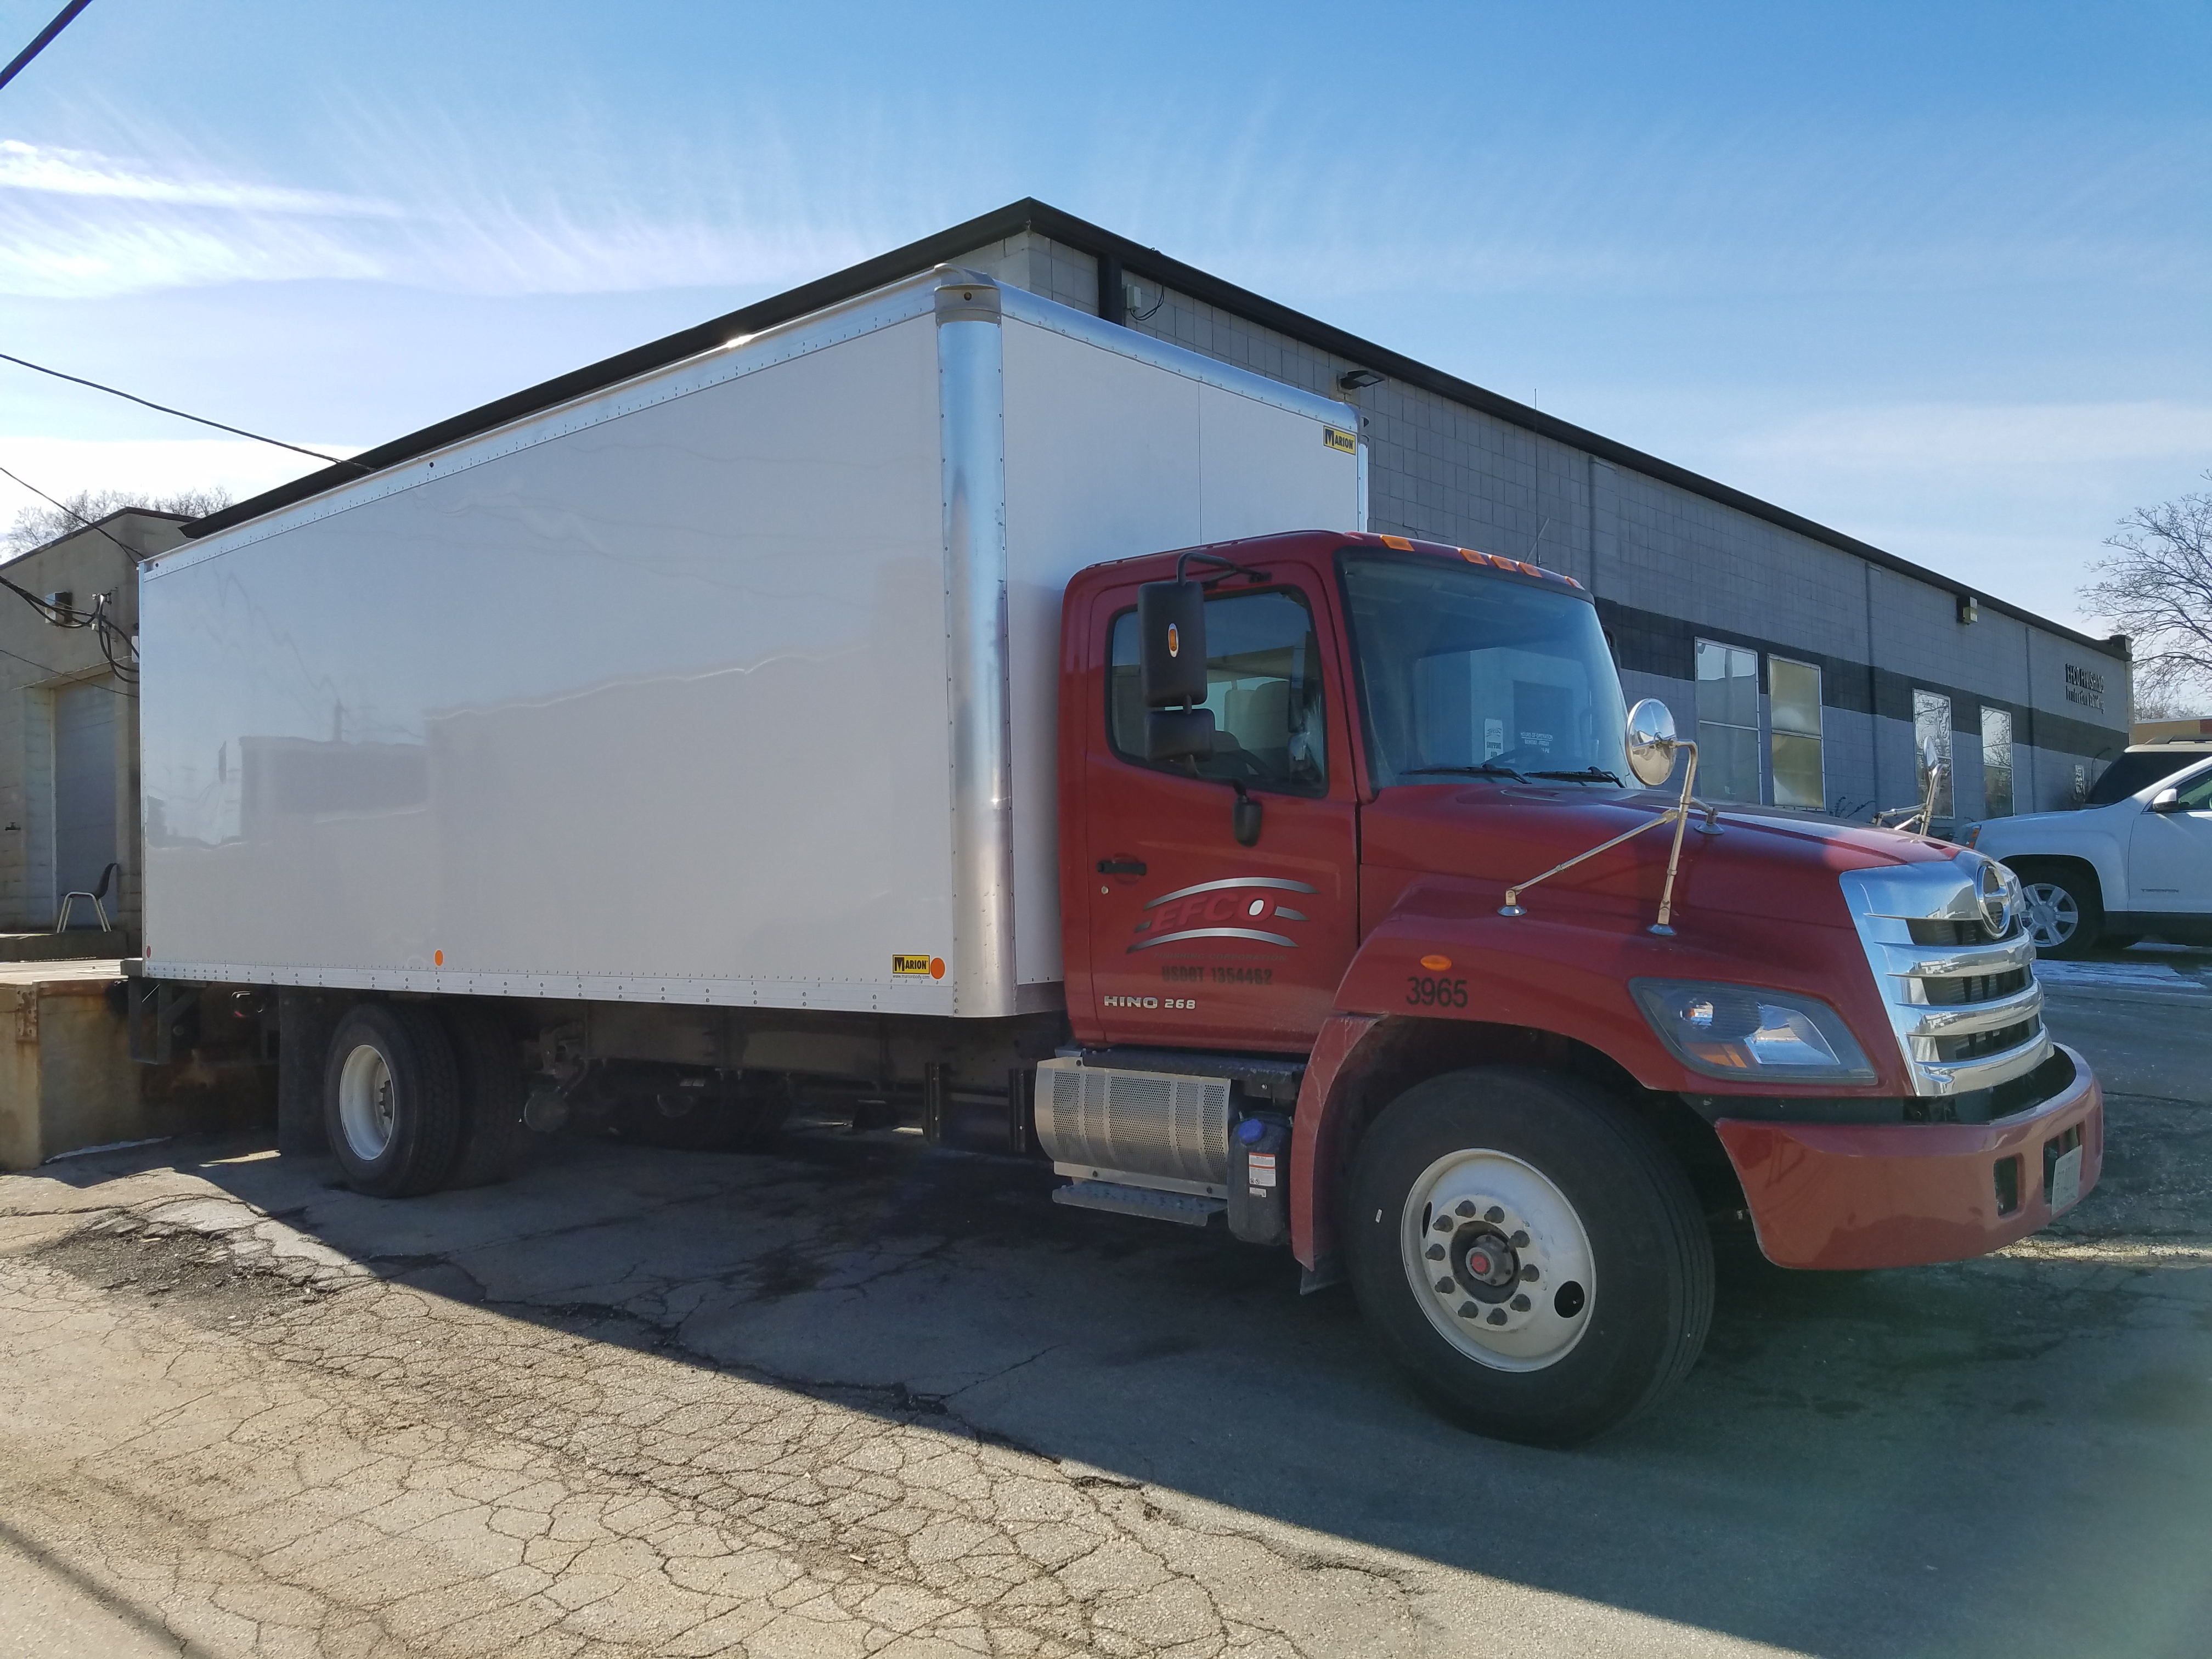 EFCO Metal Finishing pickup & delivery truck